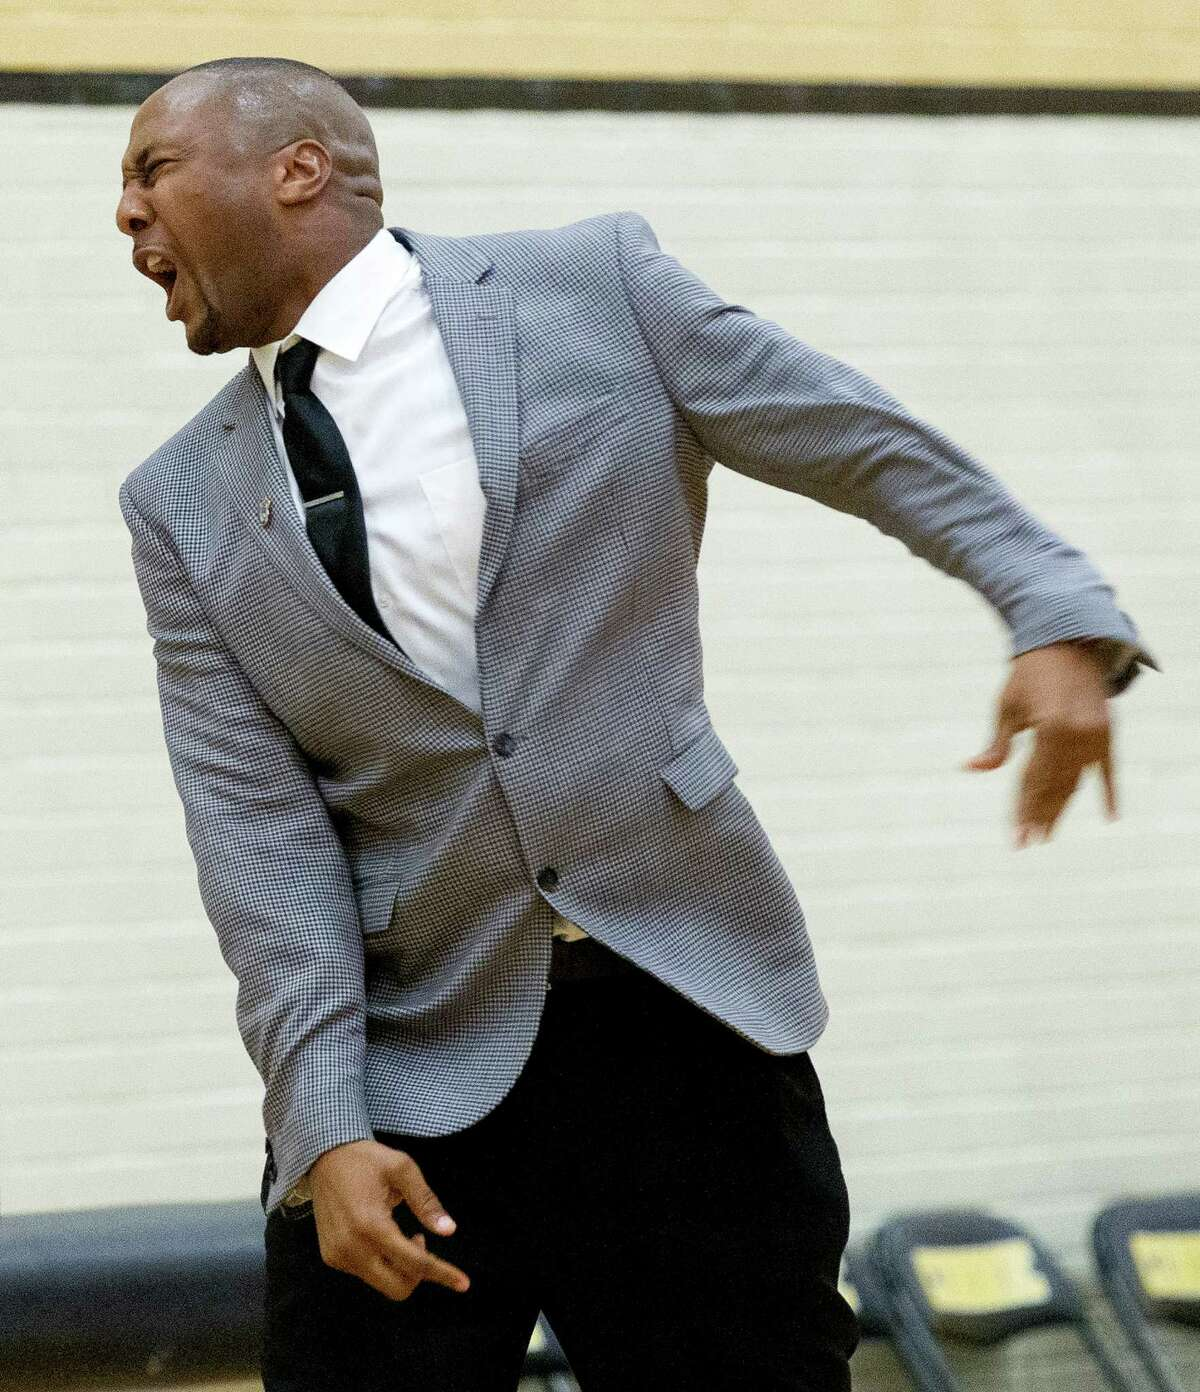 Conroe head coach Daryl Mason reacts to a call during the fourth quarter of a District 12-6A high school boys basketball game at Conroe High School Friday, Feb. 3, 2017, in Conroe. Conroe defeated Lufkin 68-62 in overtime.